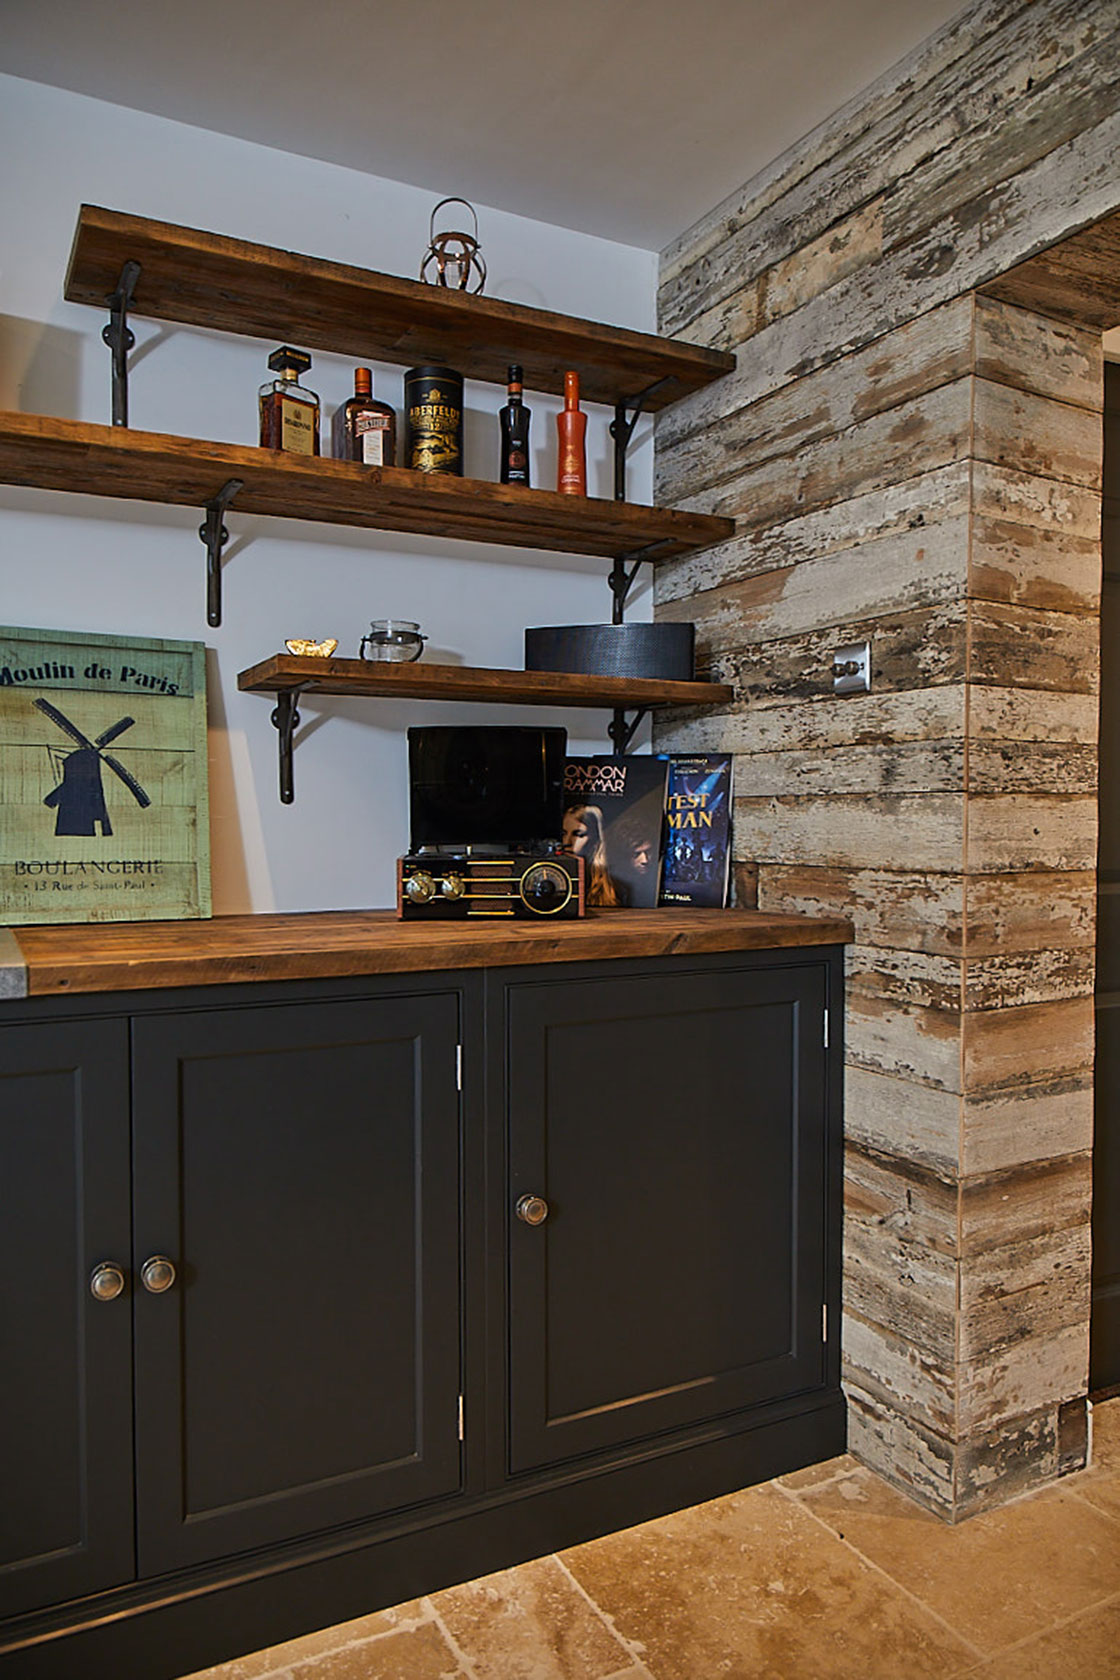 Dark blue bespoke painted units next to crackled white wall cladding and open rustic shelves with cast brackets